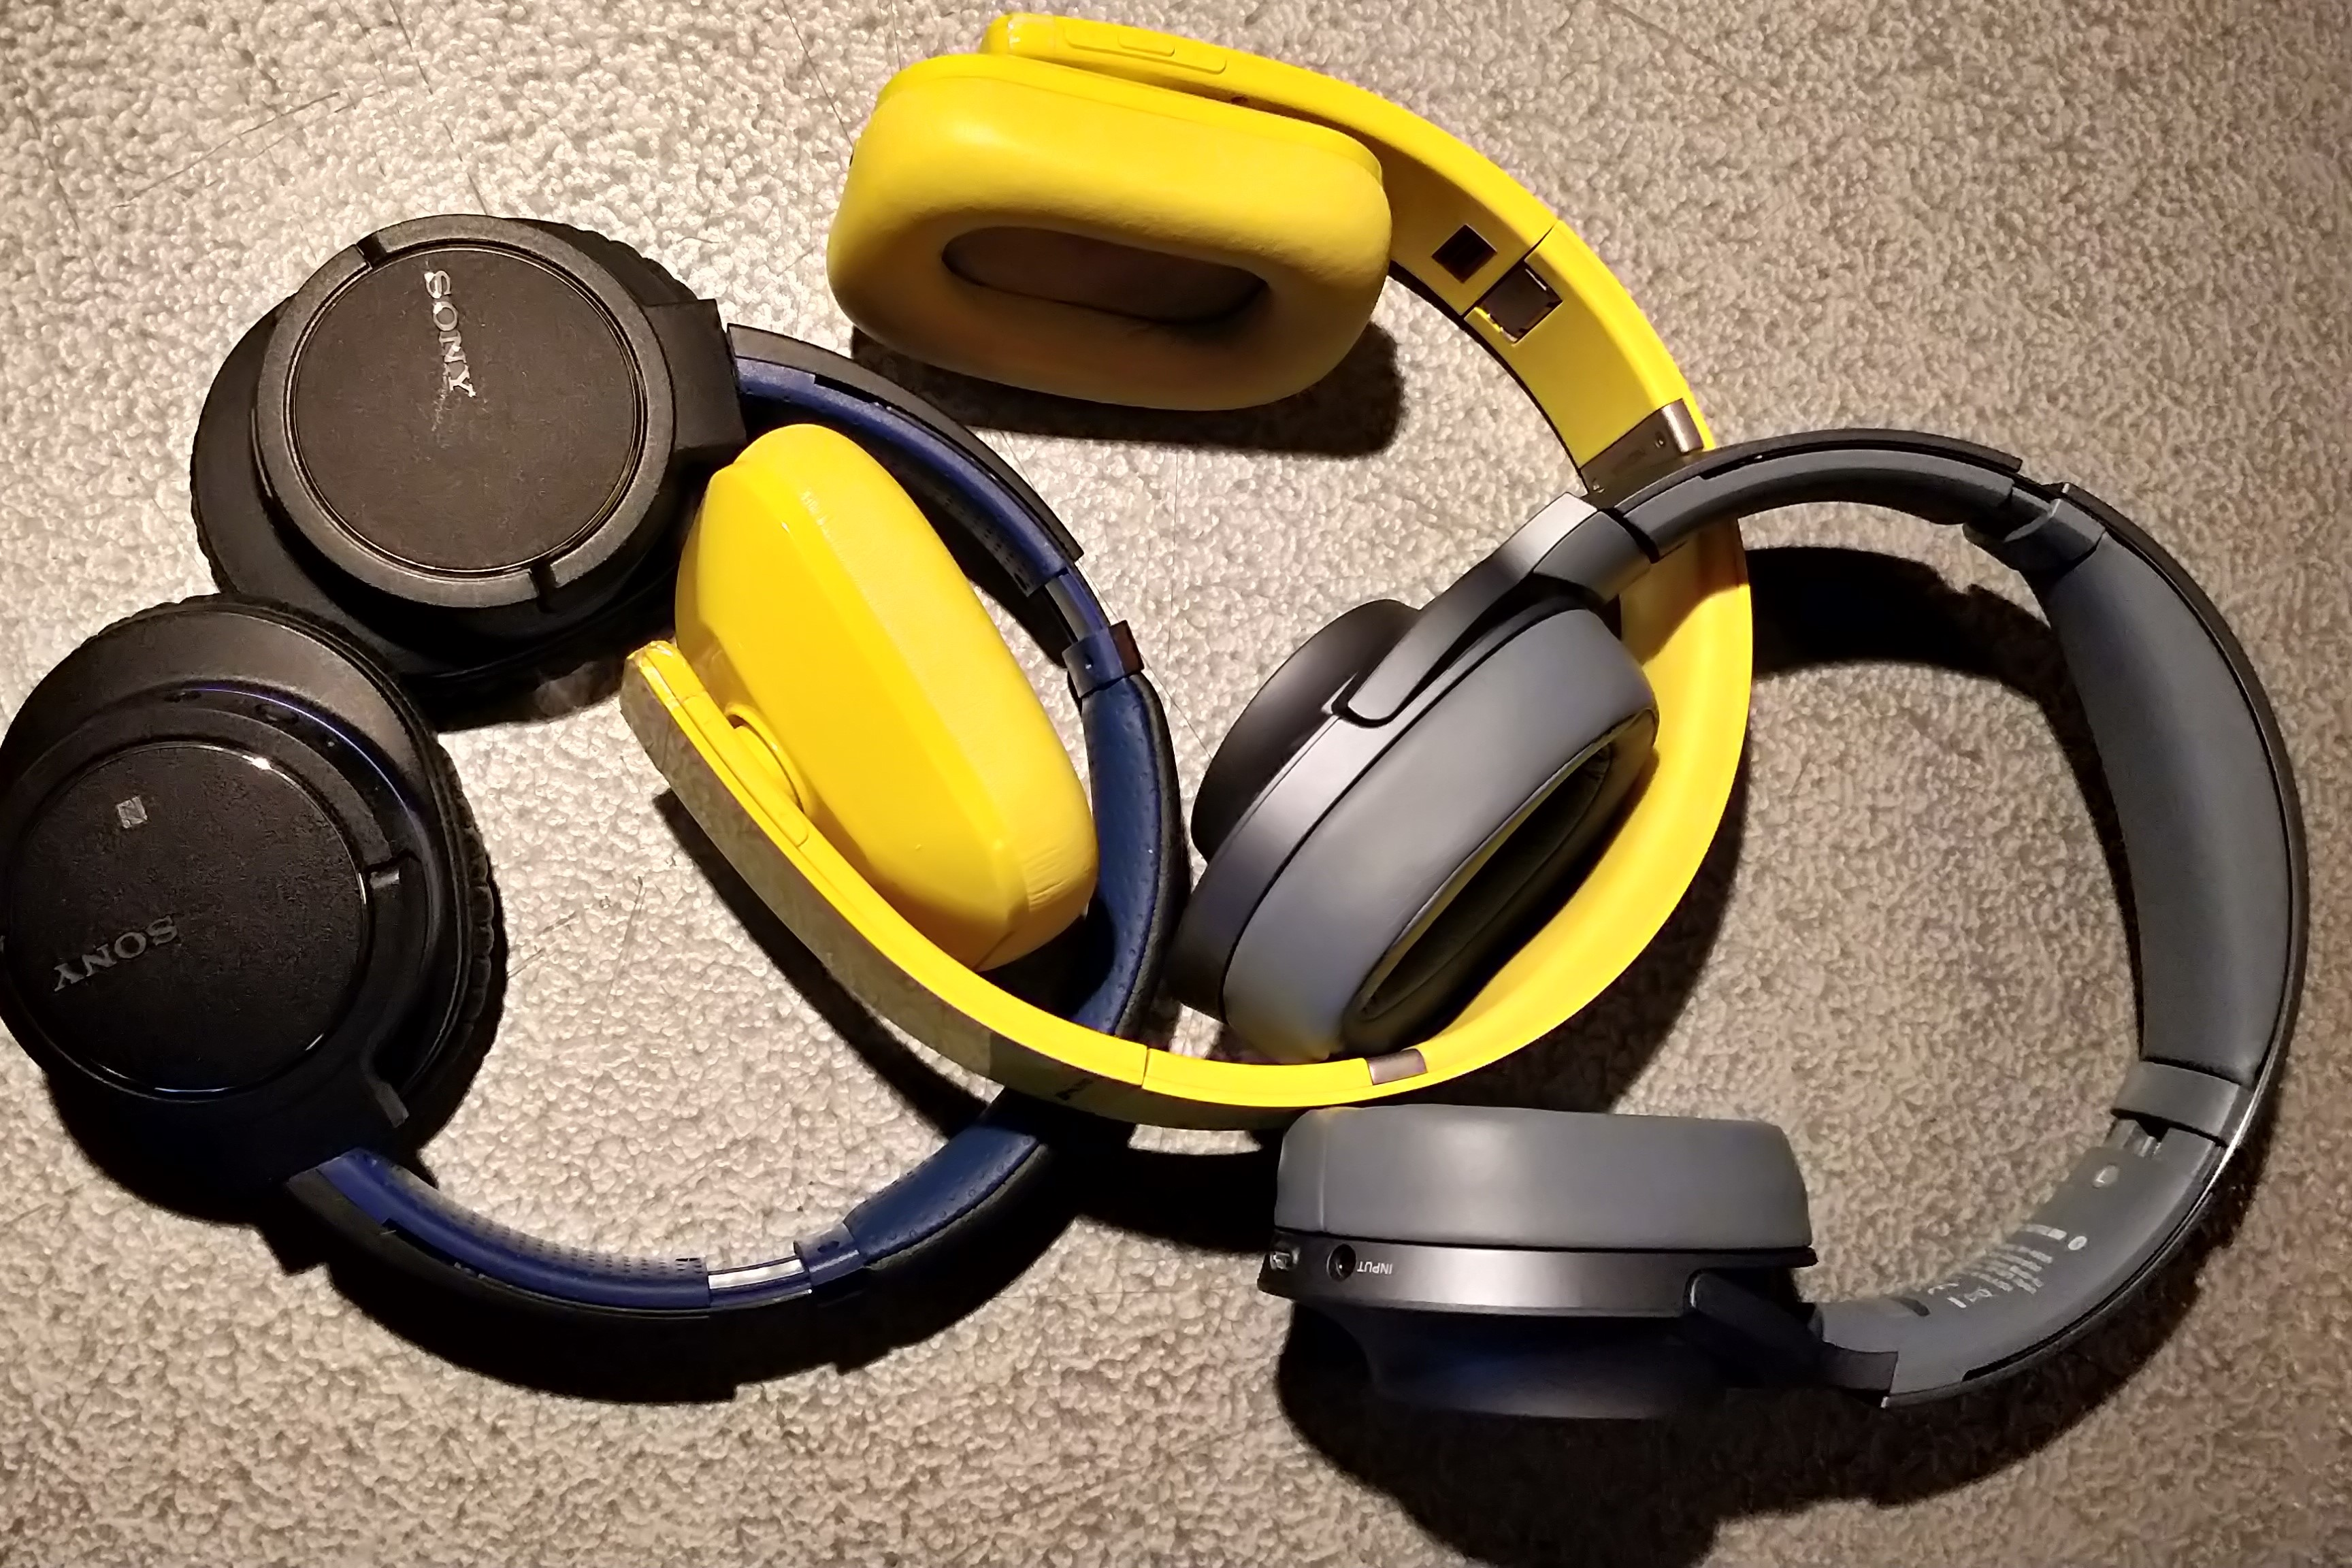 Headphones review: Sony h ear WH-H900n compared to the MDR-ZX770 and